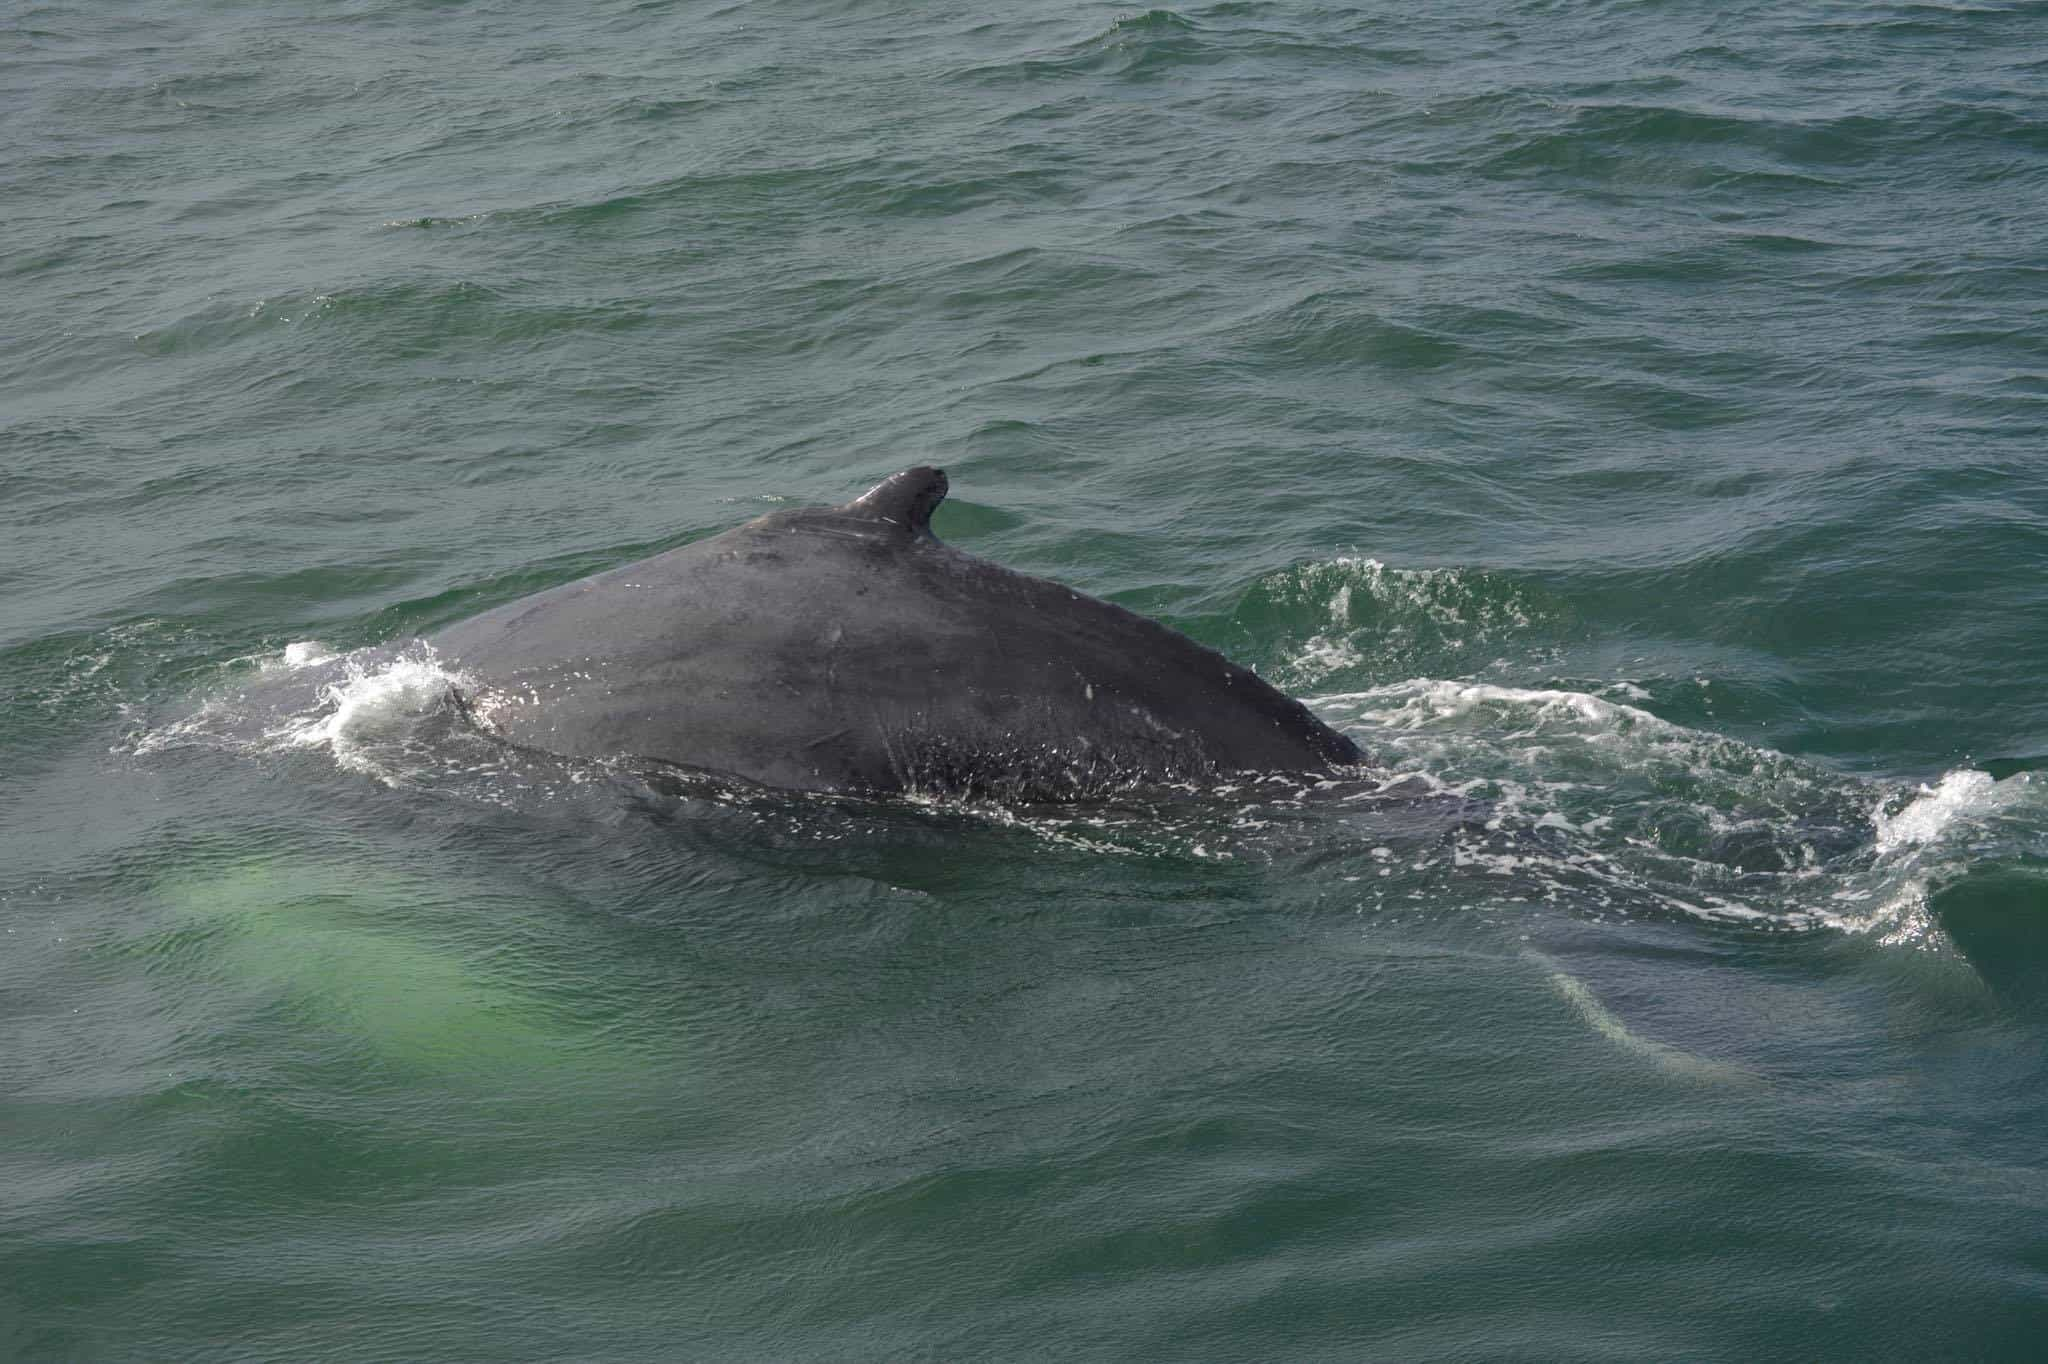 Cape May Whale